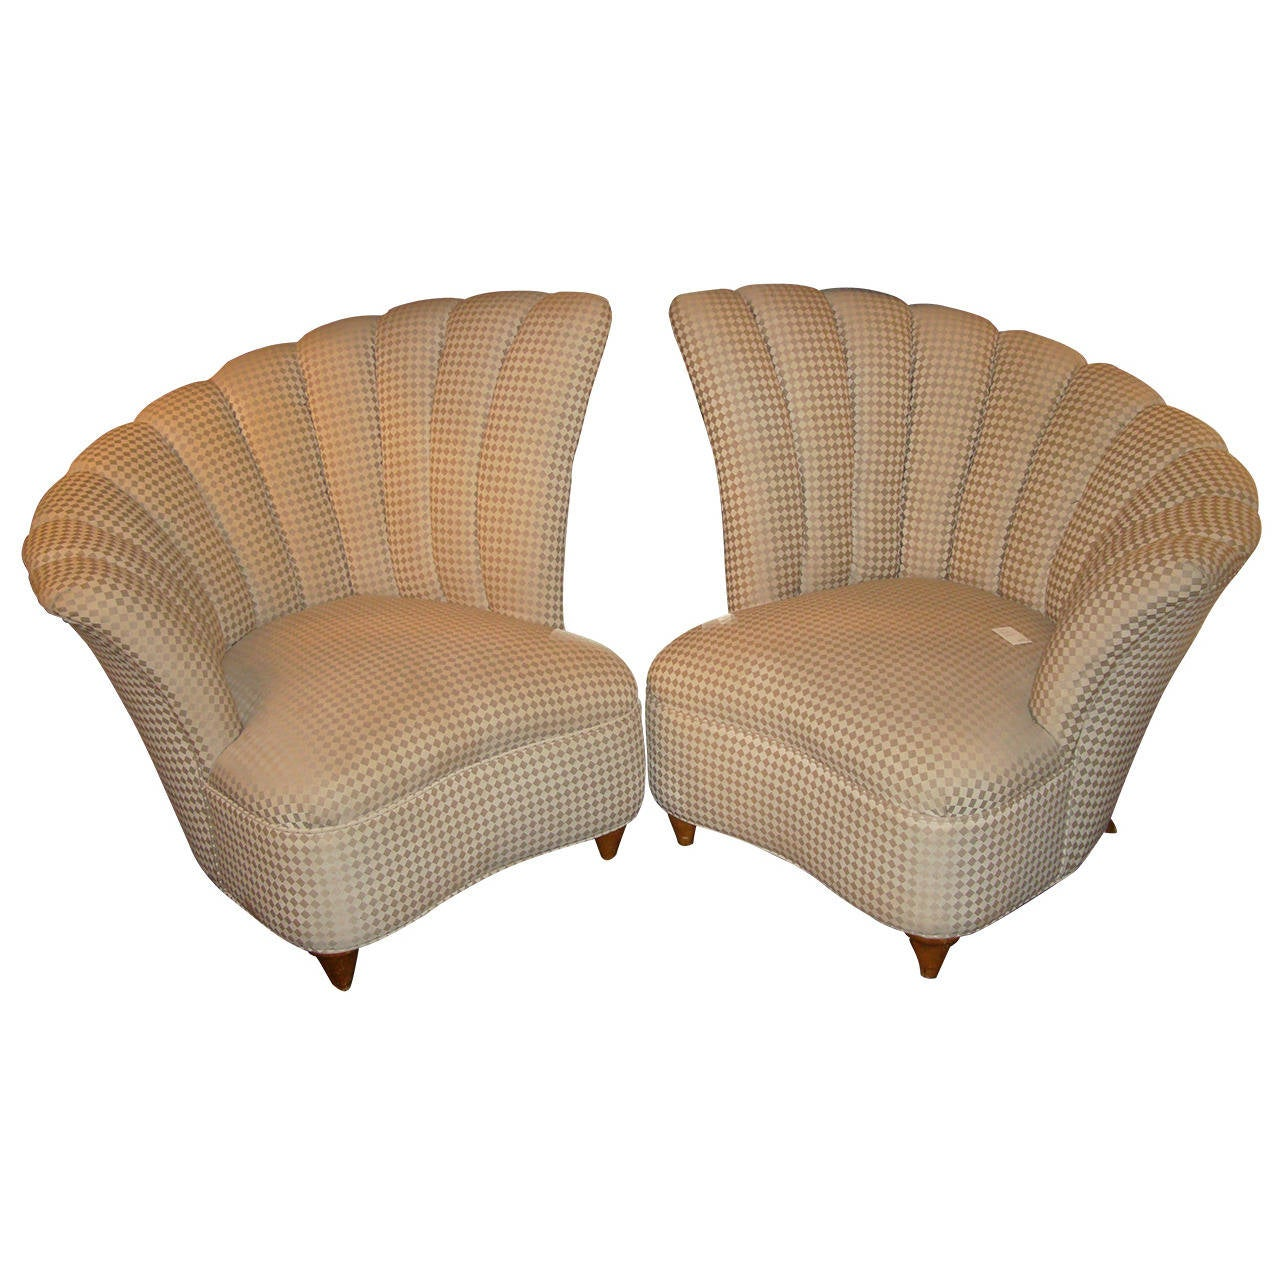 Hollywood Fan Back Upholstered Chairs At 1stdibs